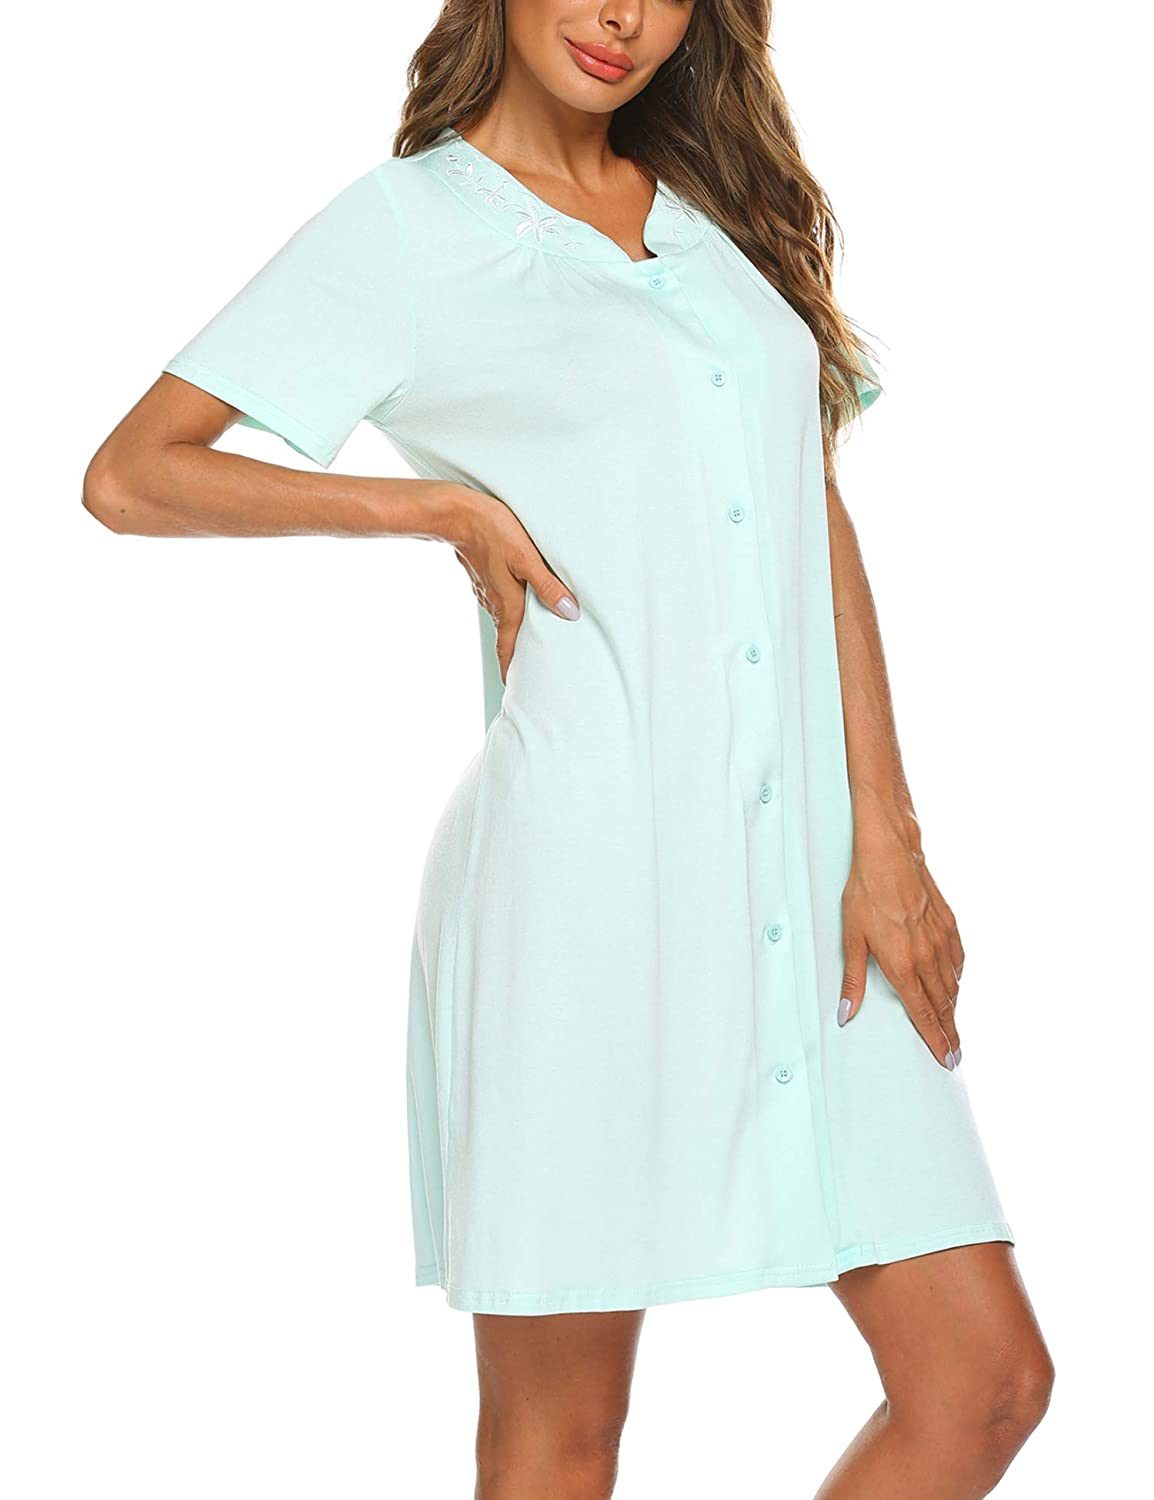 Ekouaer Womens Dusters and Housecoats Short Sleeves Nightgown Button Front Nightwear Lounger PJs Dress S-XXL